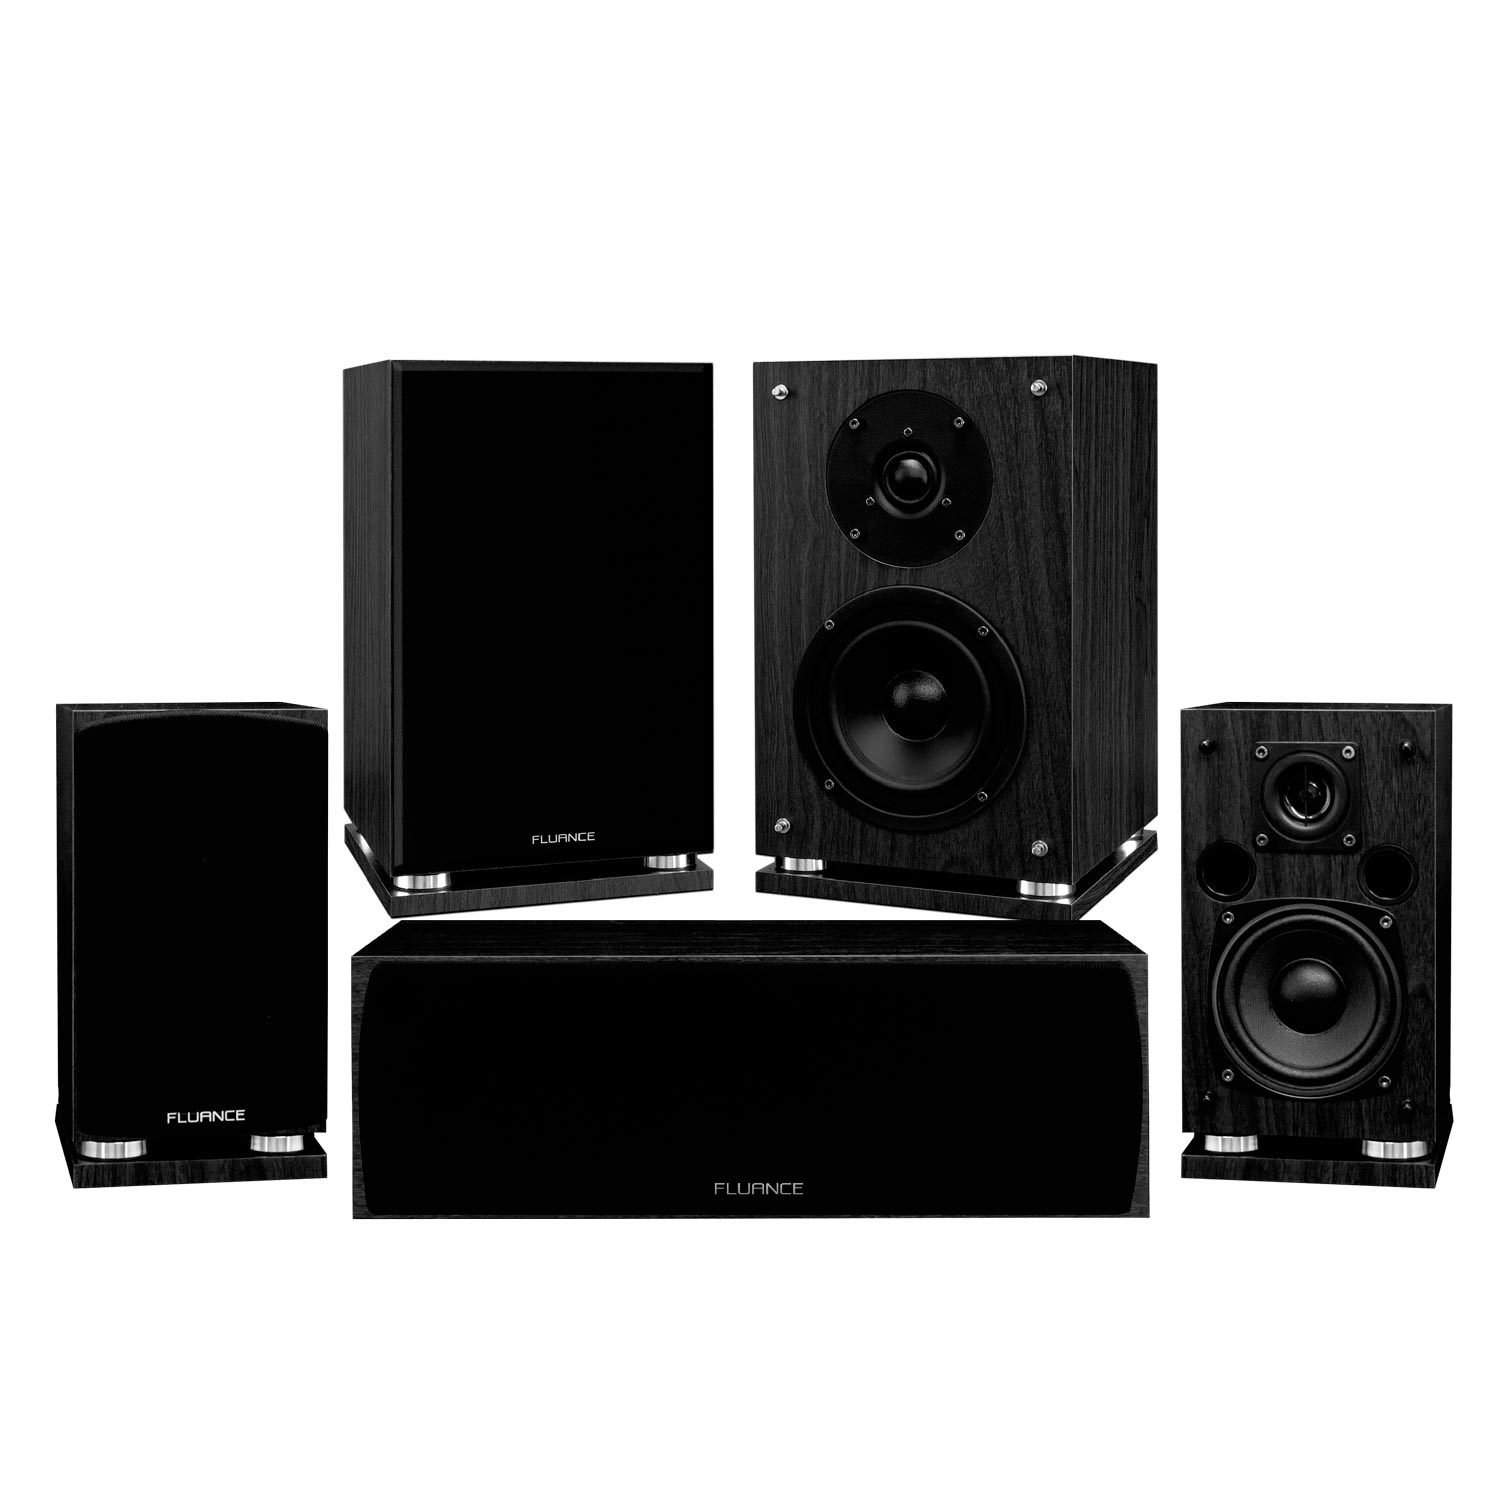 Fluance Elite Series Compact Surround Sound Home Theater 5.0 Channel Speaker System including Two-way... by Fluance